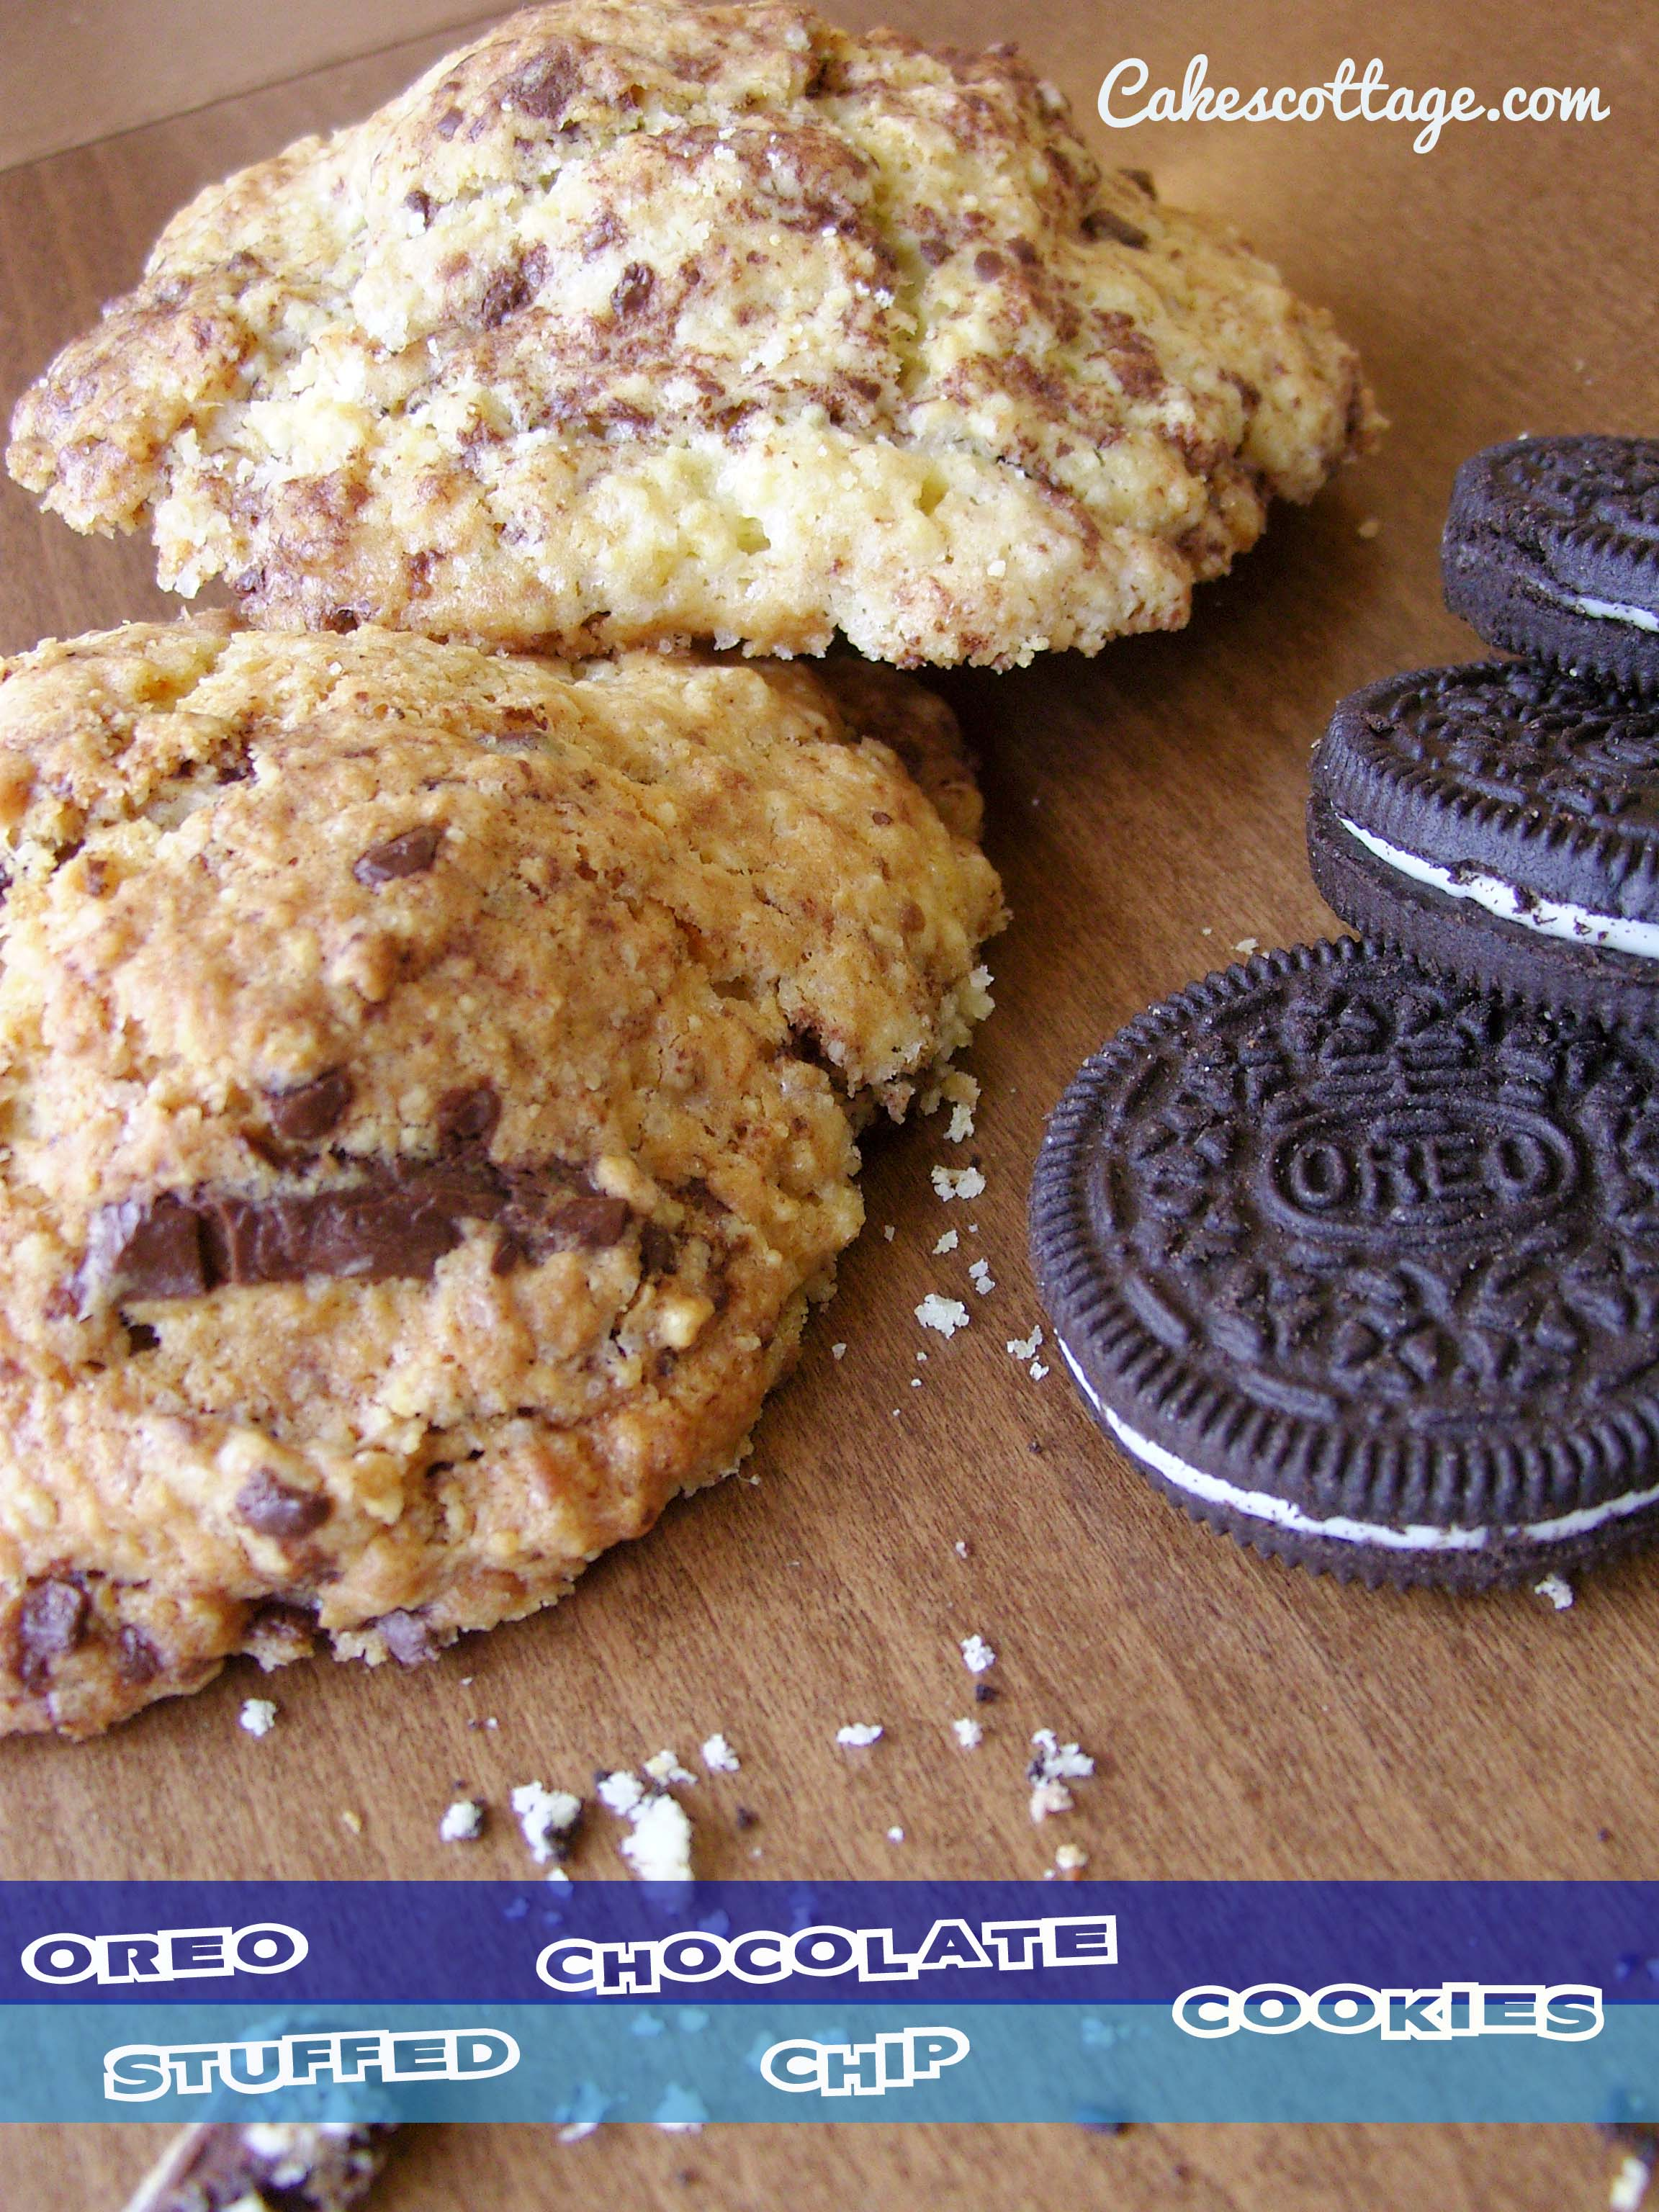 ... started with Oreo (Oreo Stuffed Chocolate Chip Cookie) | Cakescottage